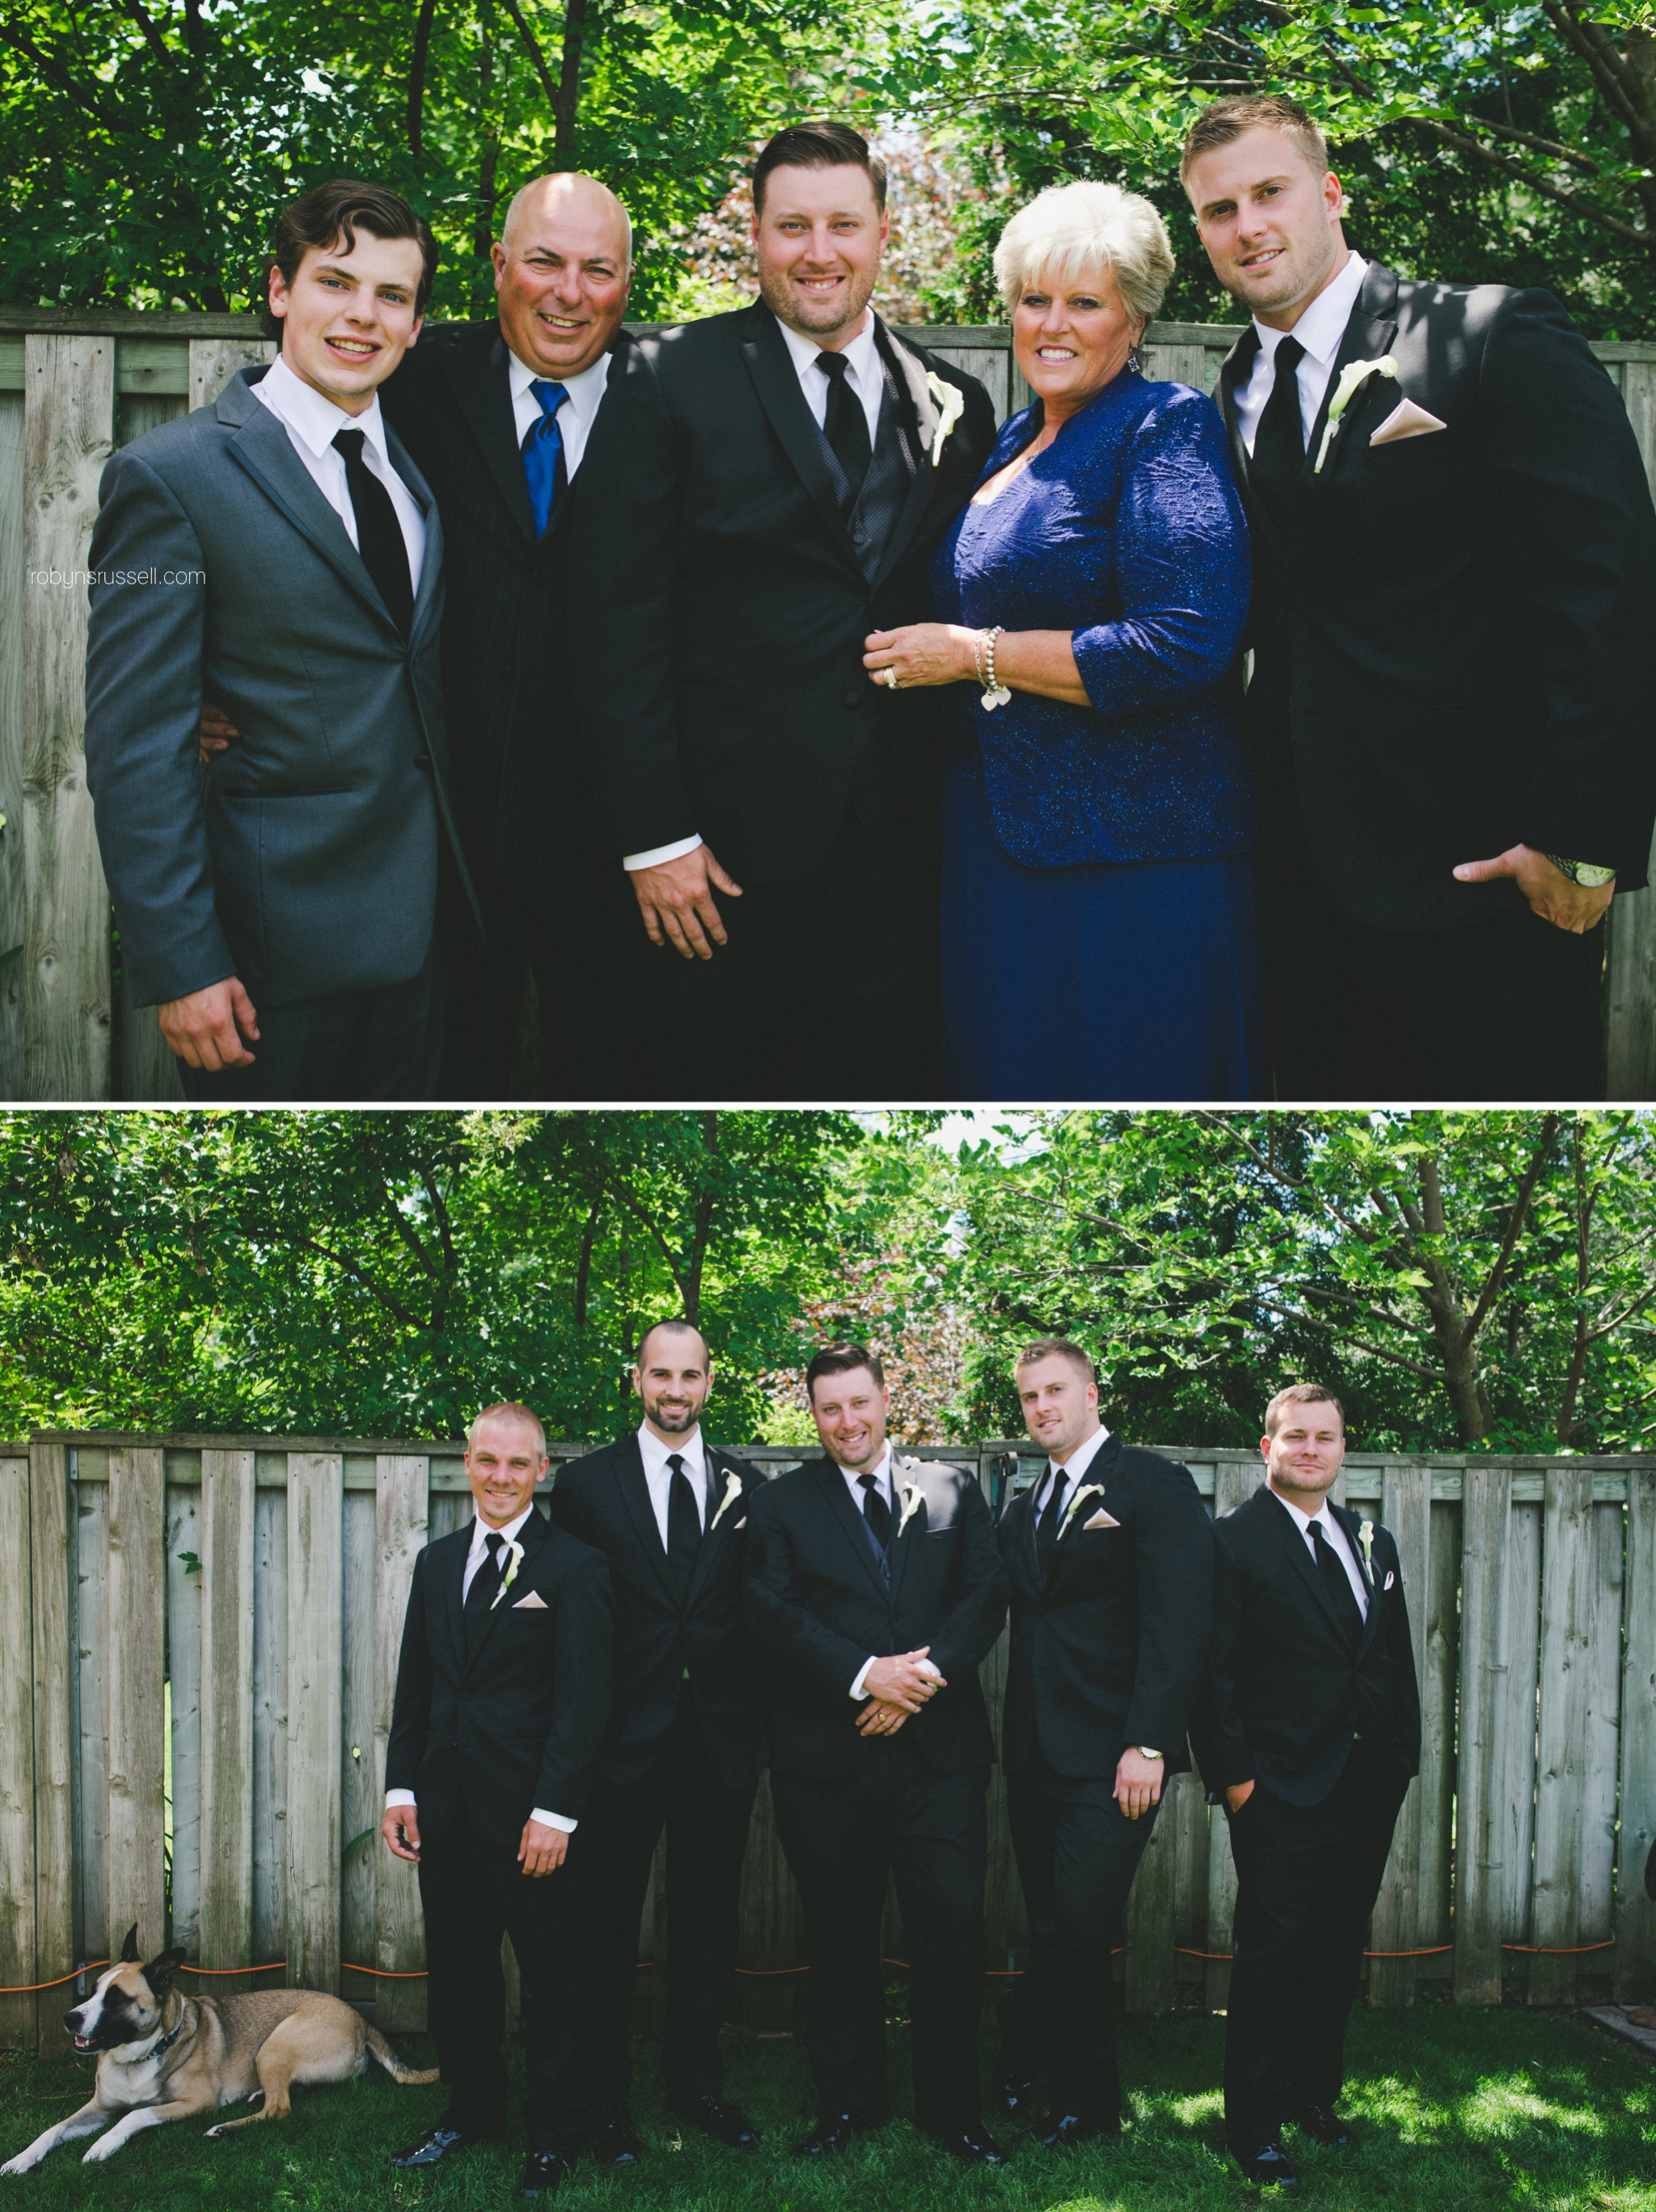 7-groom-and-family-on-wedding-day